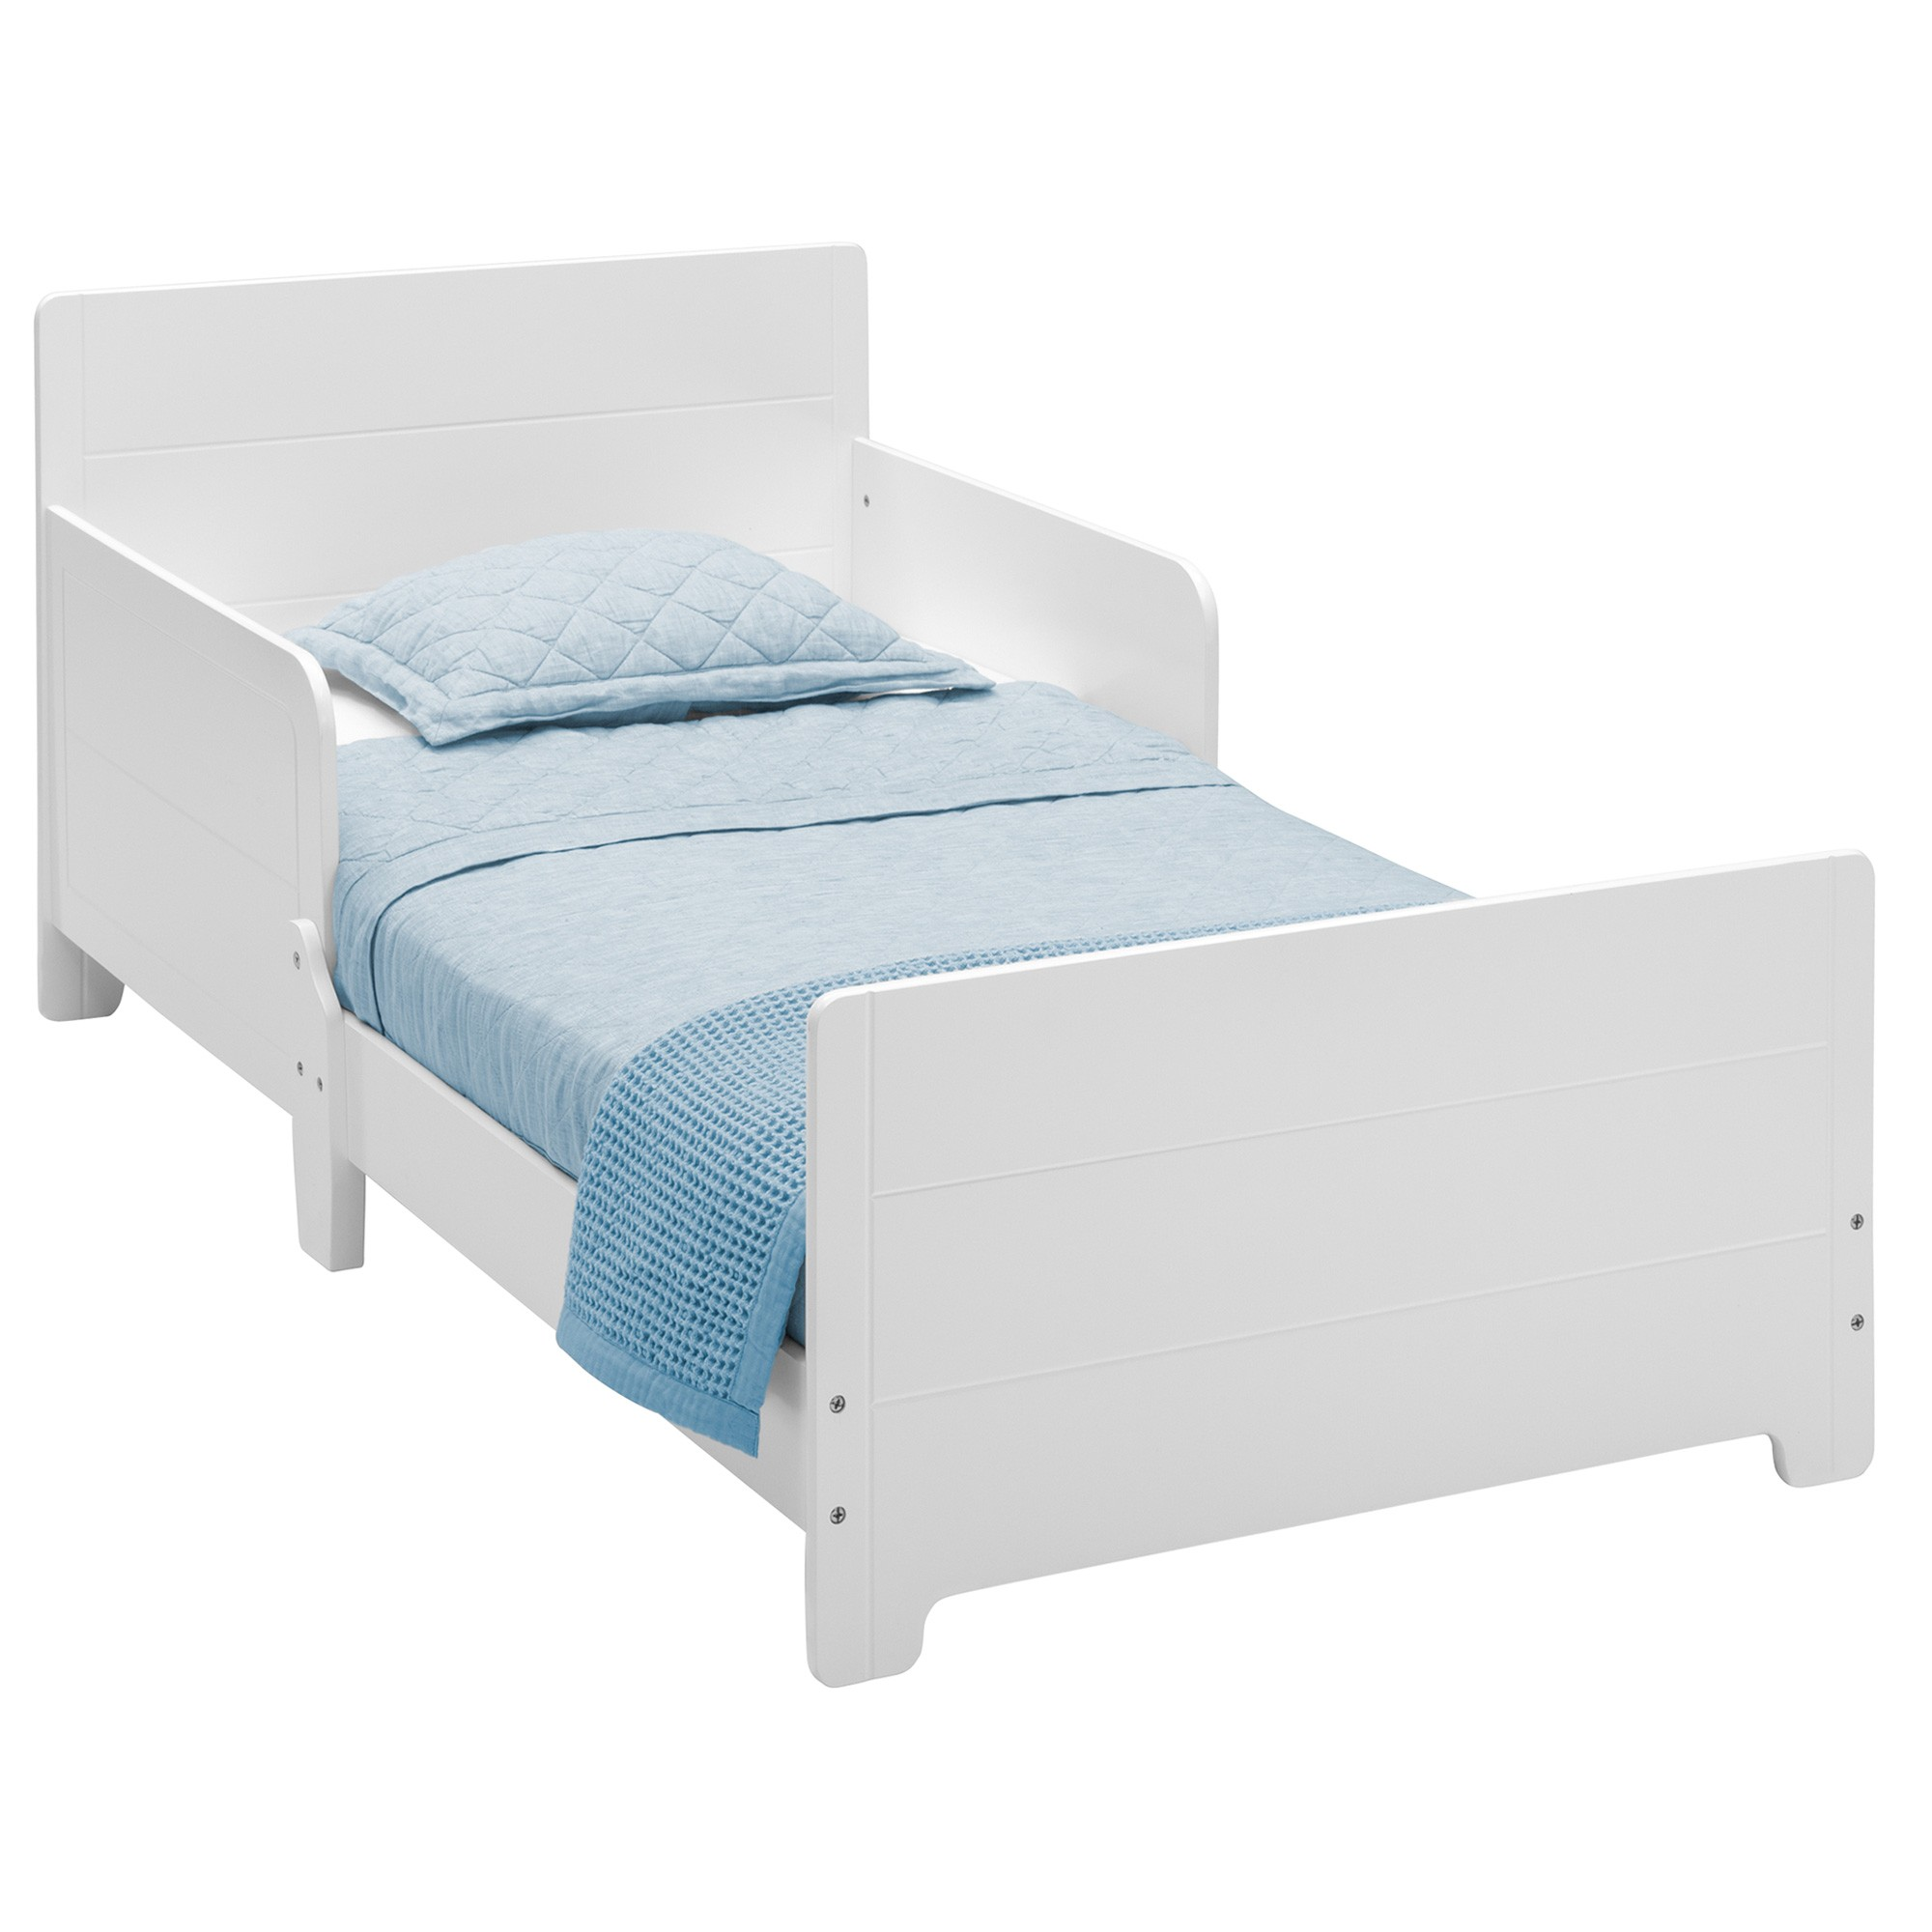 Delta Children MySize Toddler Bed, Style A, White